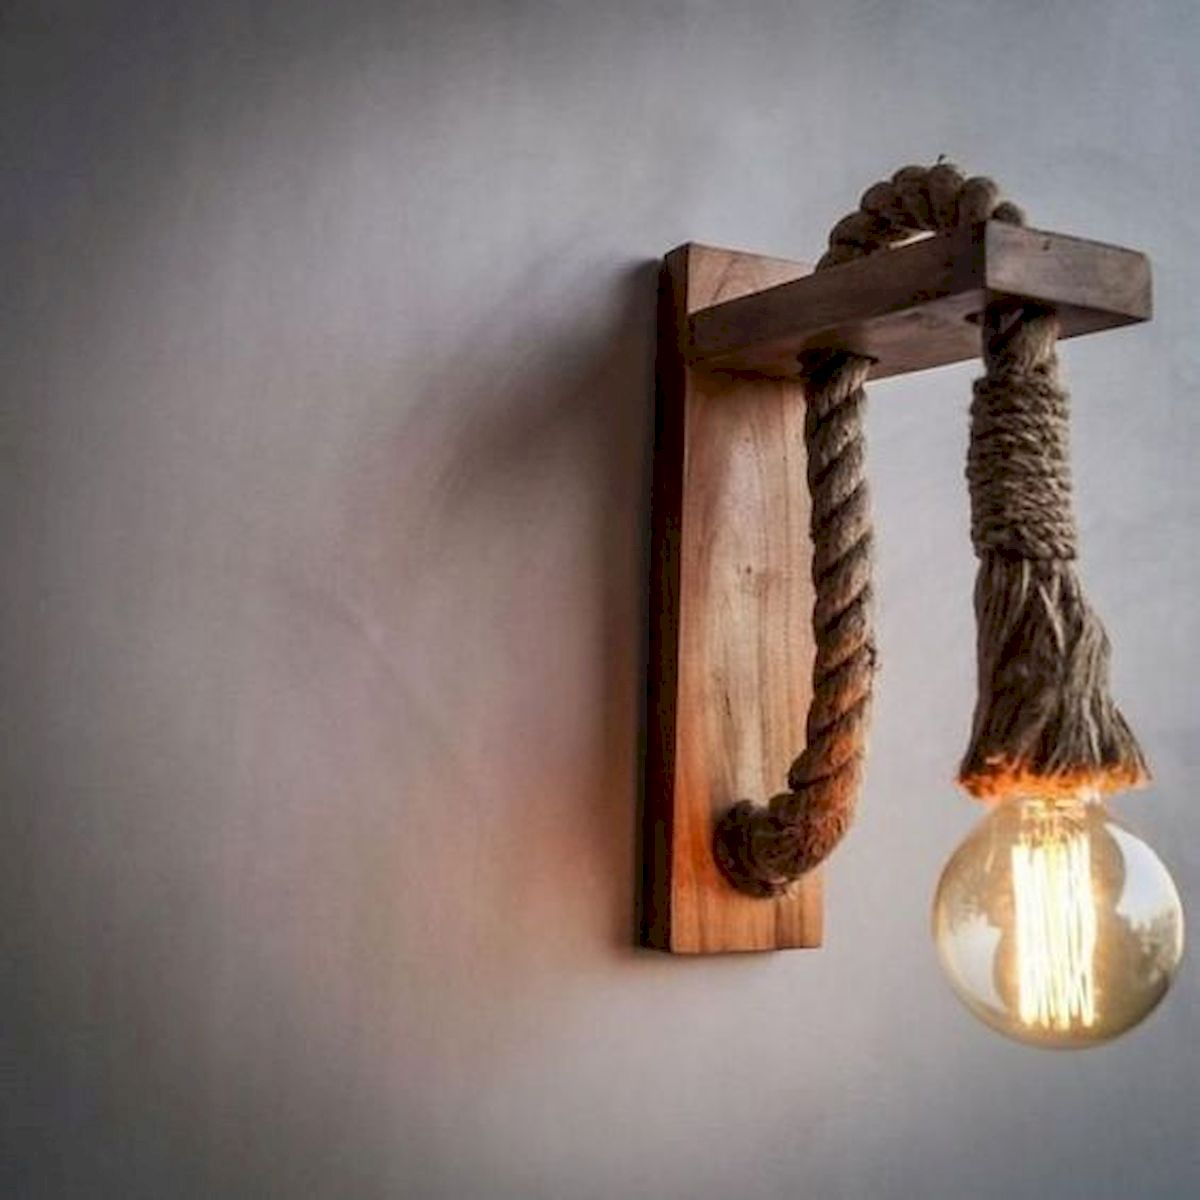 40 Fantastic DIY Lamps Decoration Ideas for Your Home (24)